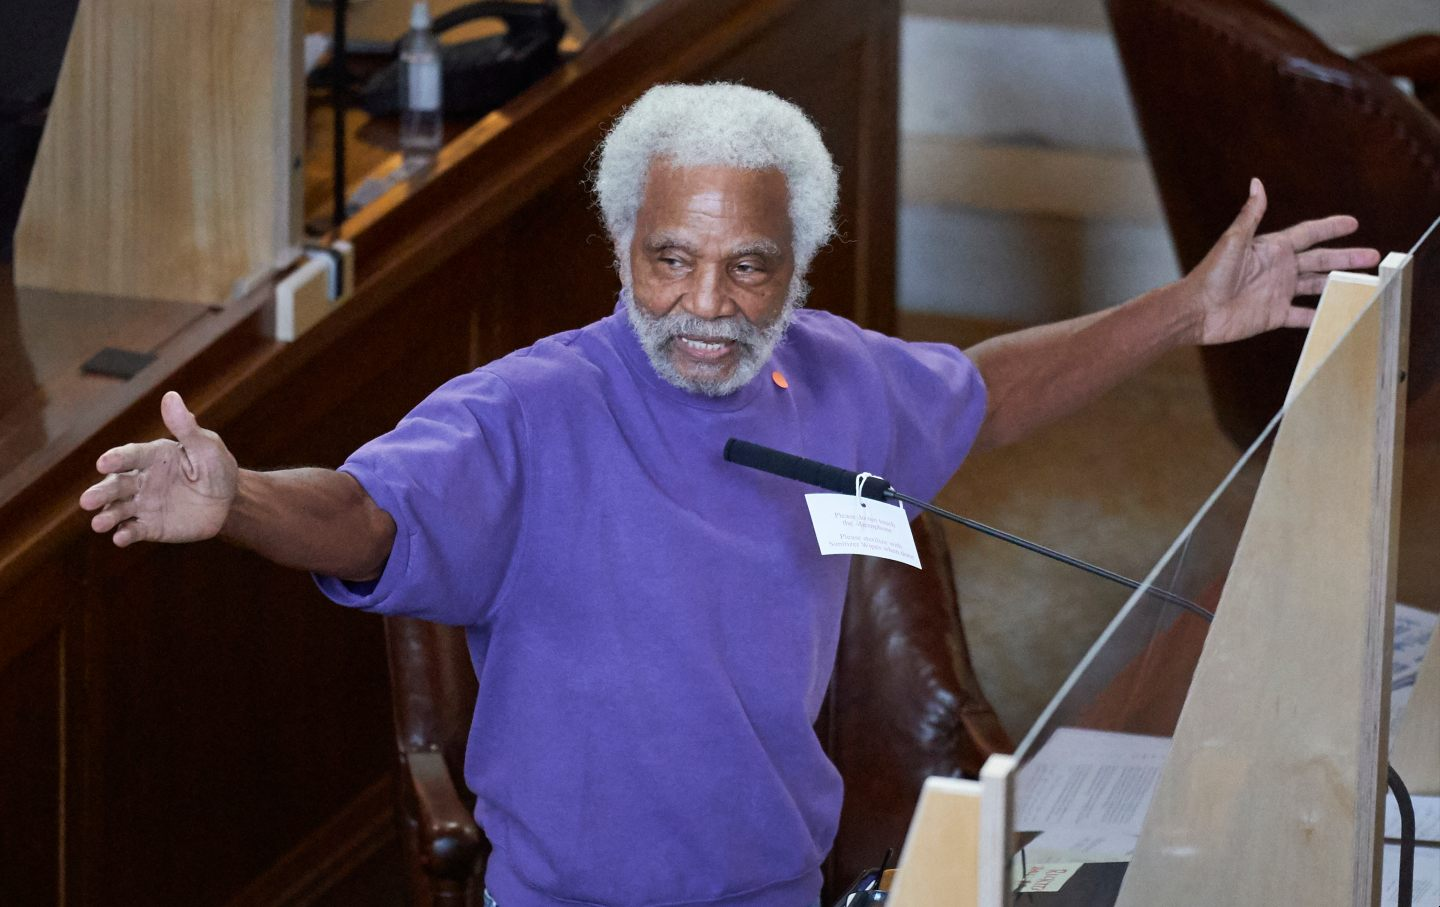 Ernie Chambers extends his hands while speaking in front of a microphone